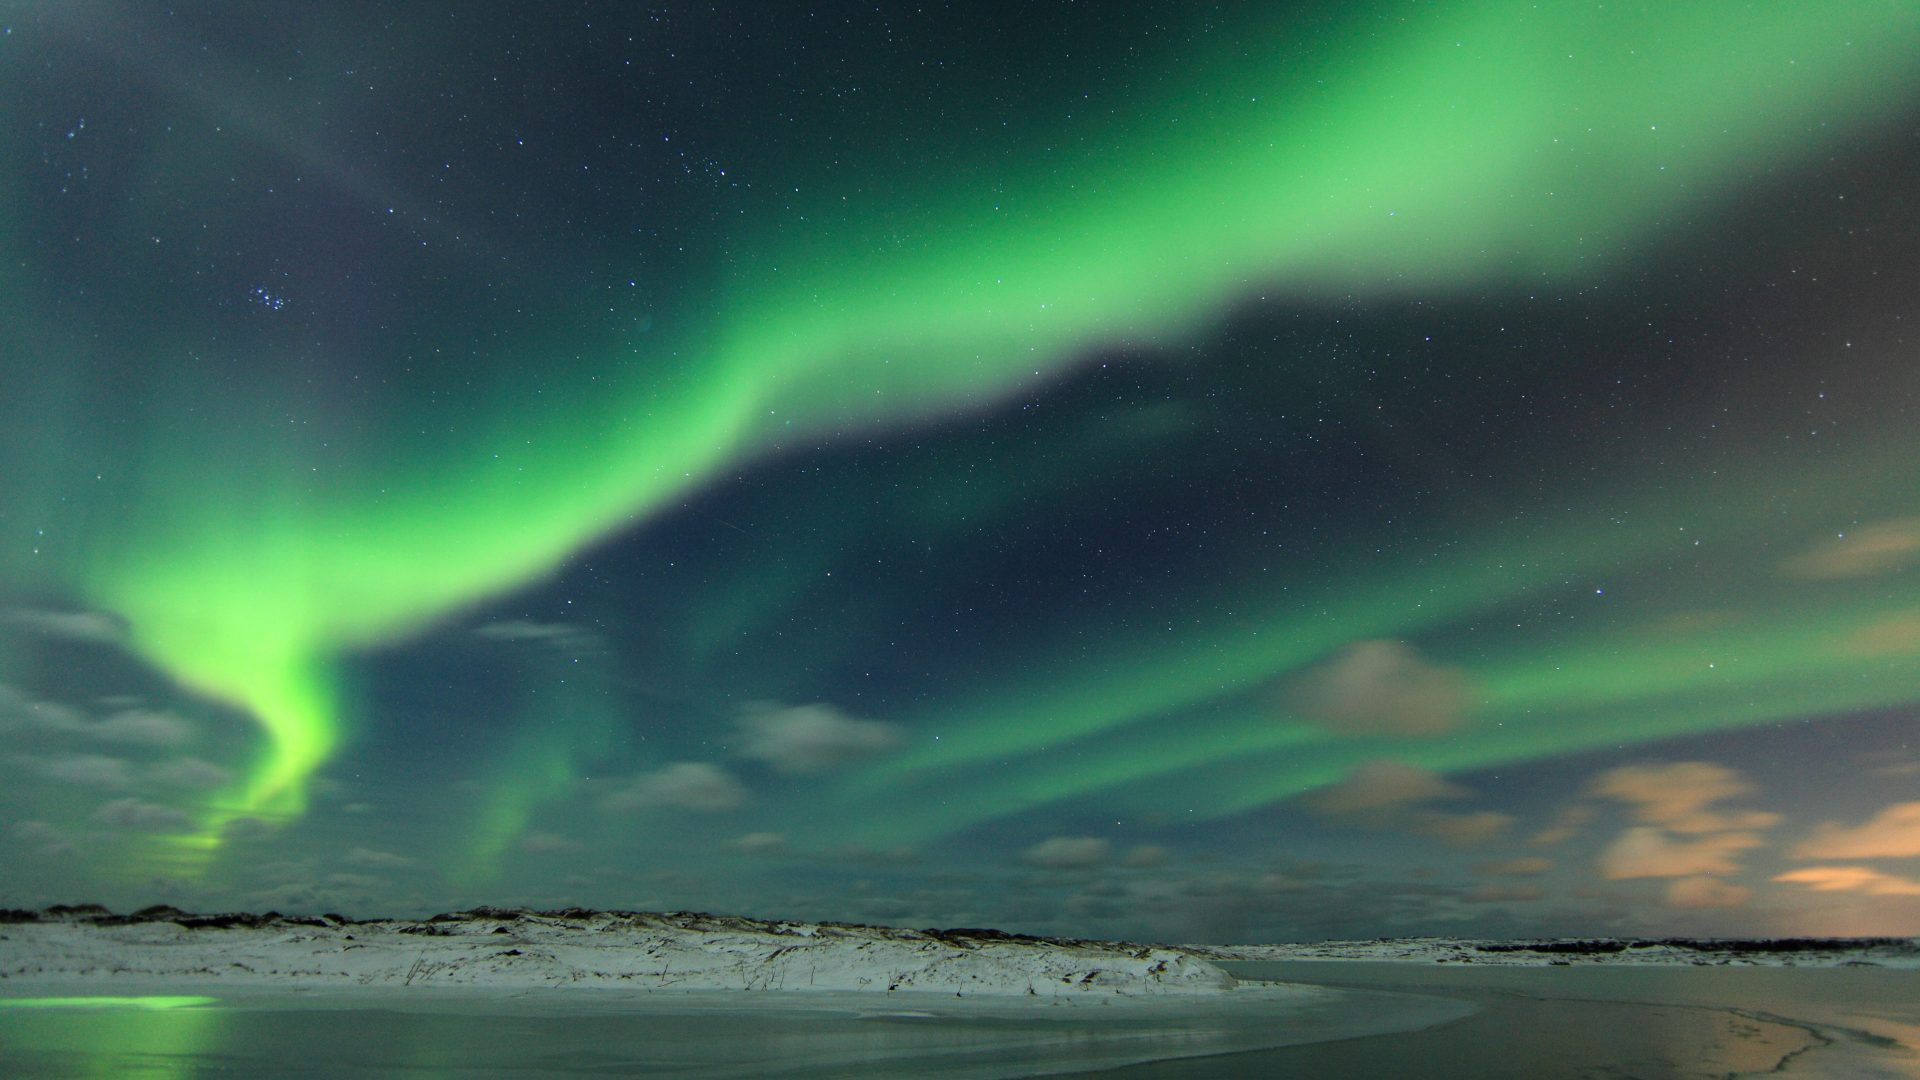 The Northern Lights over the Icelandic coastline.